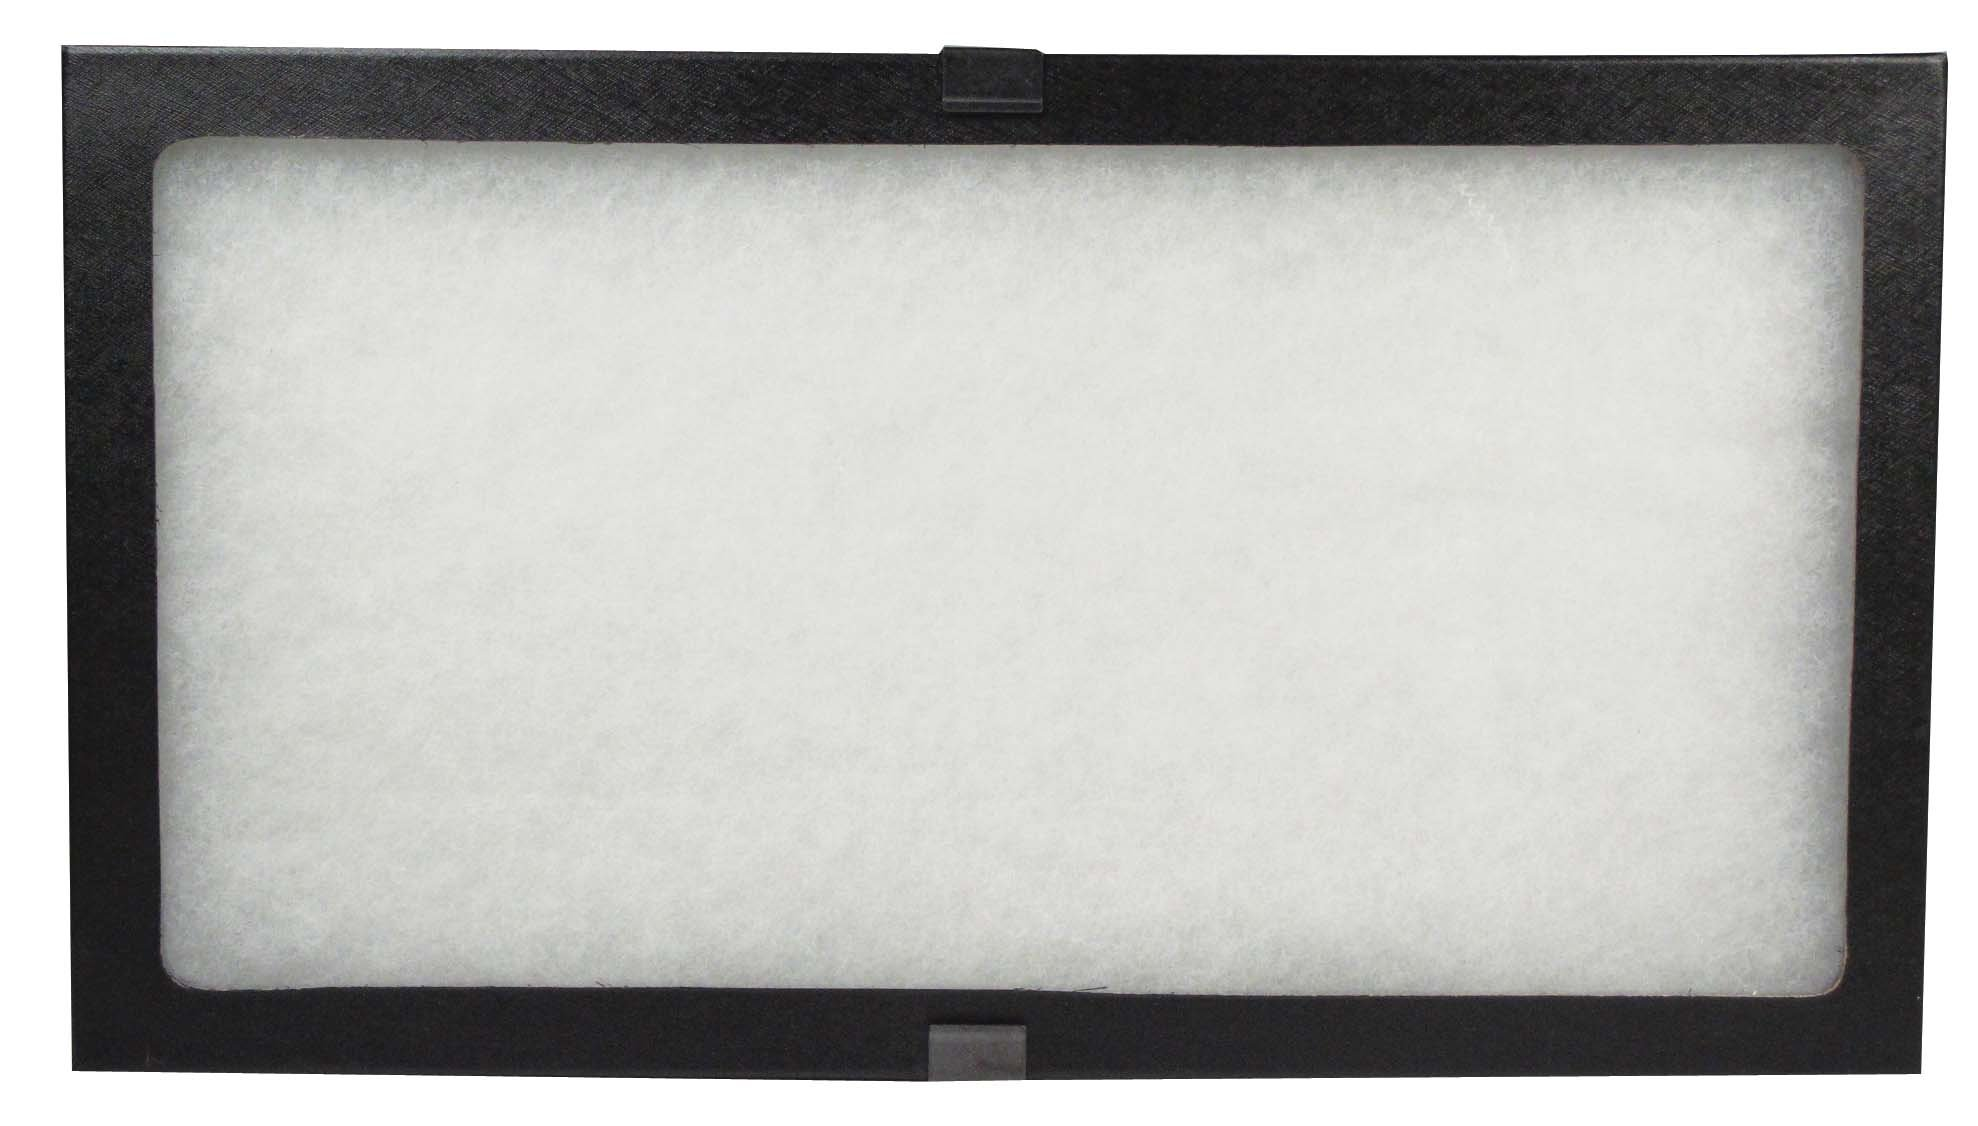 SE JT9214 Glass Top Display Box with Metal Clips, 14.5'' x 8'' x 0.75''